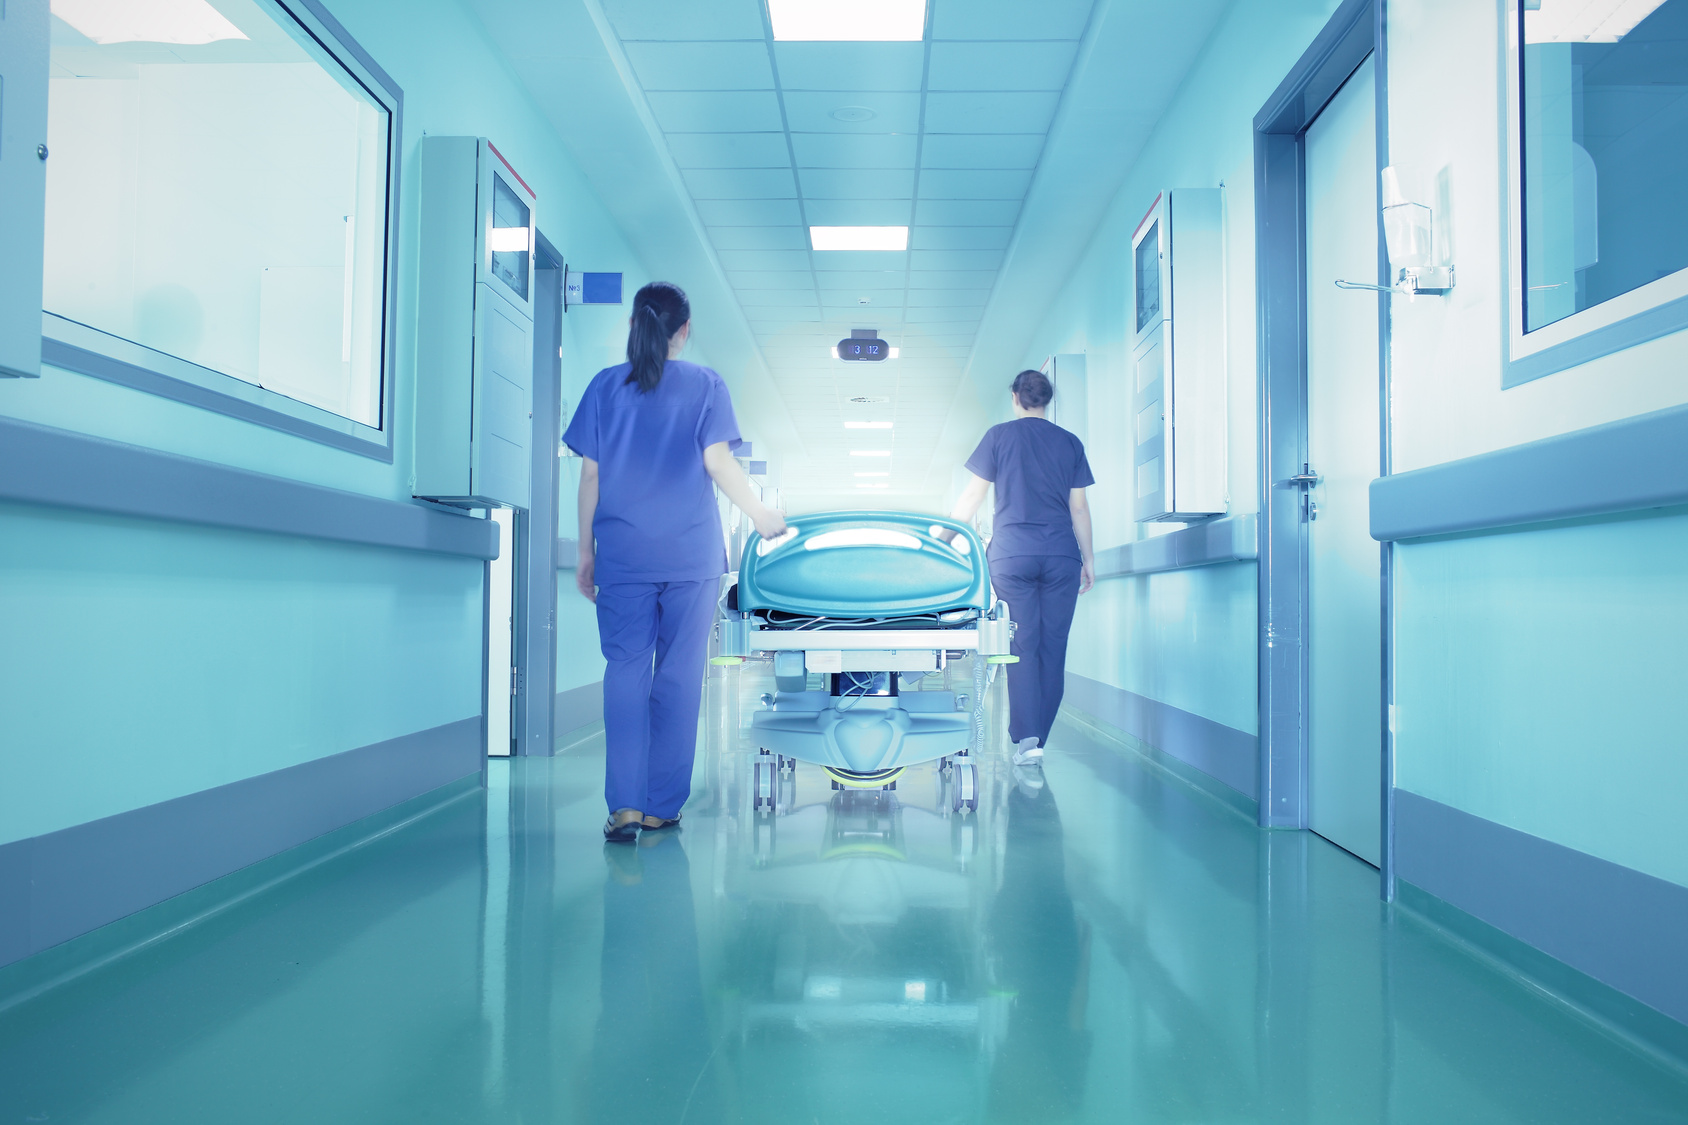 Bright lights at the end the hospital corridor. The concept of l